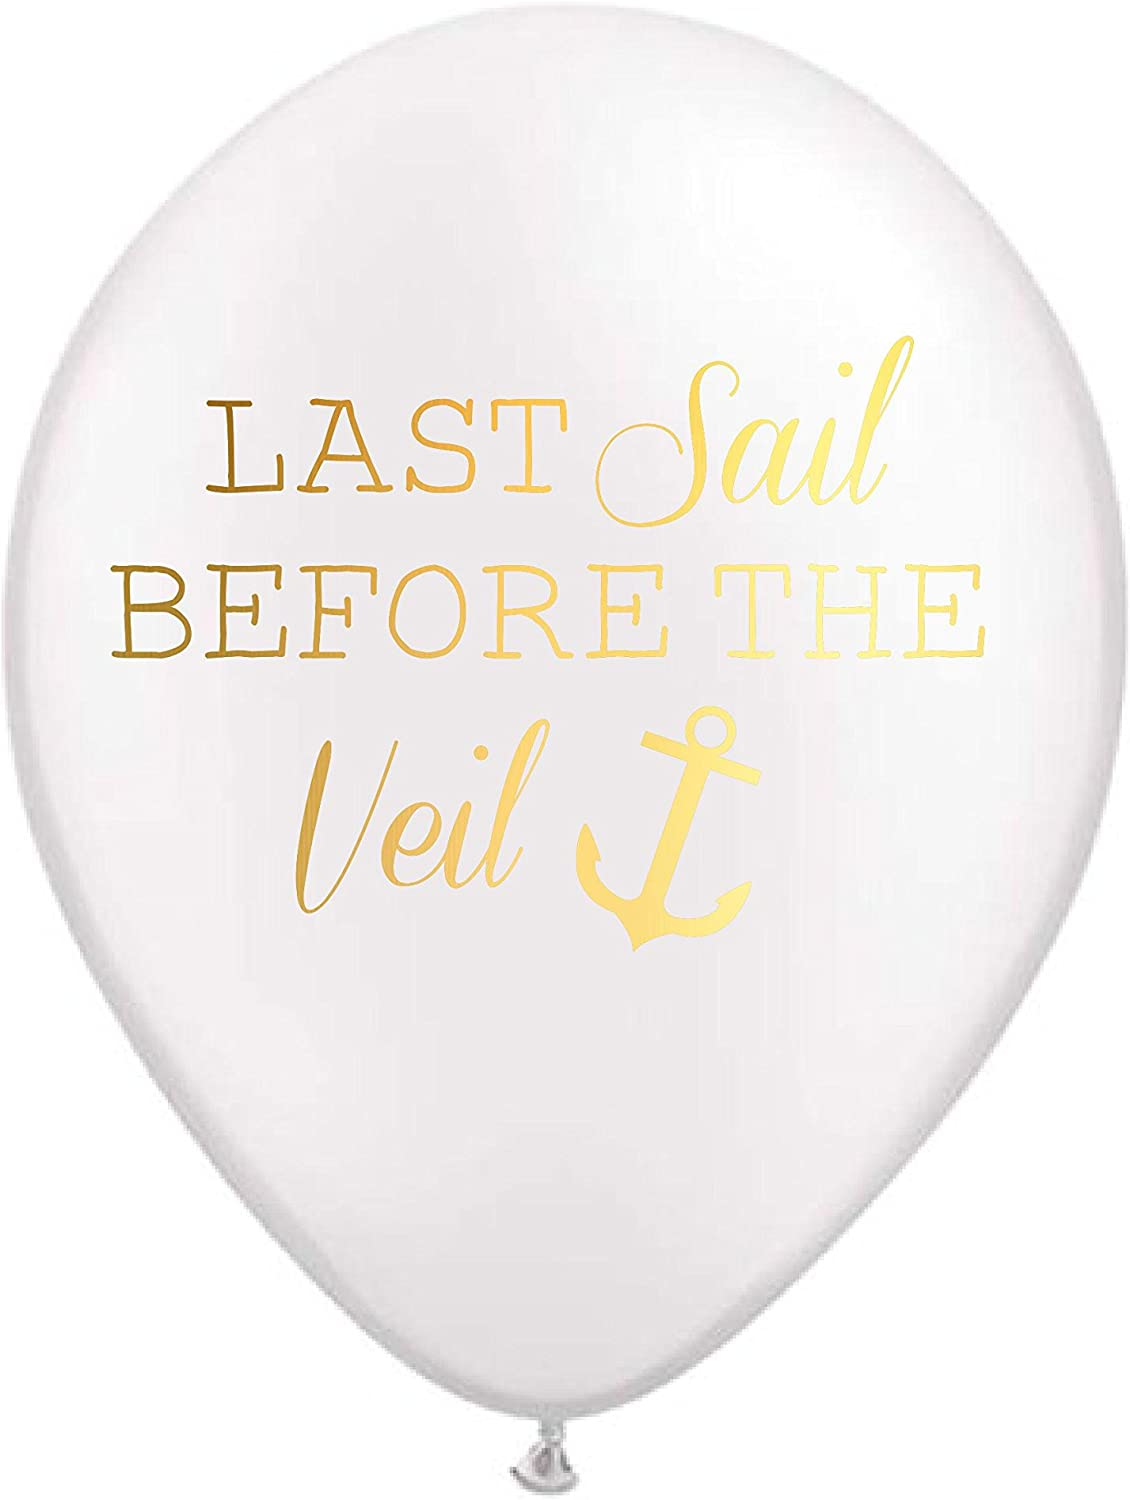 White Last Sail Before the Veil Balloons Anchor Bachelorette Party Decorations Nautical Party Balloons Nautical Bachelorette Decorations Set of 5 Bachelorette Party Supplies Nautical